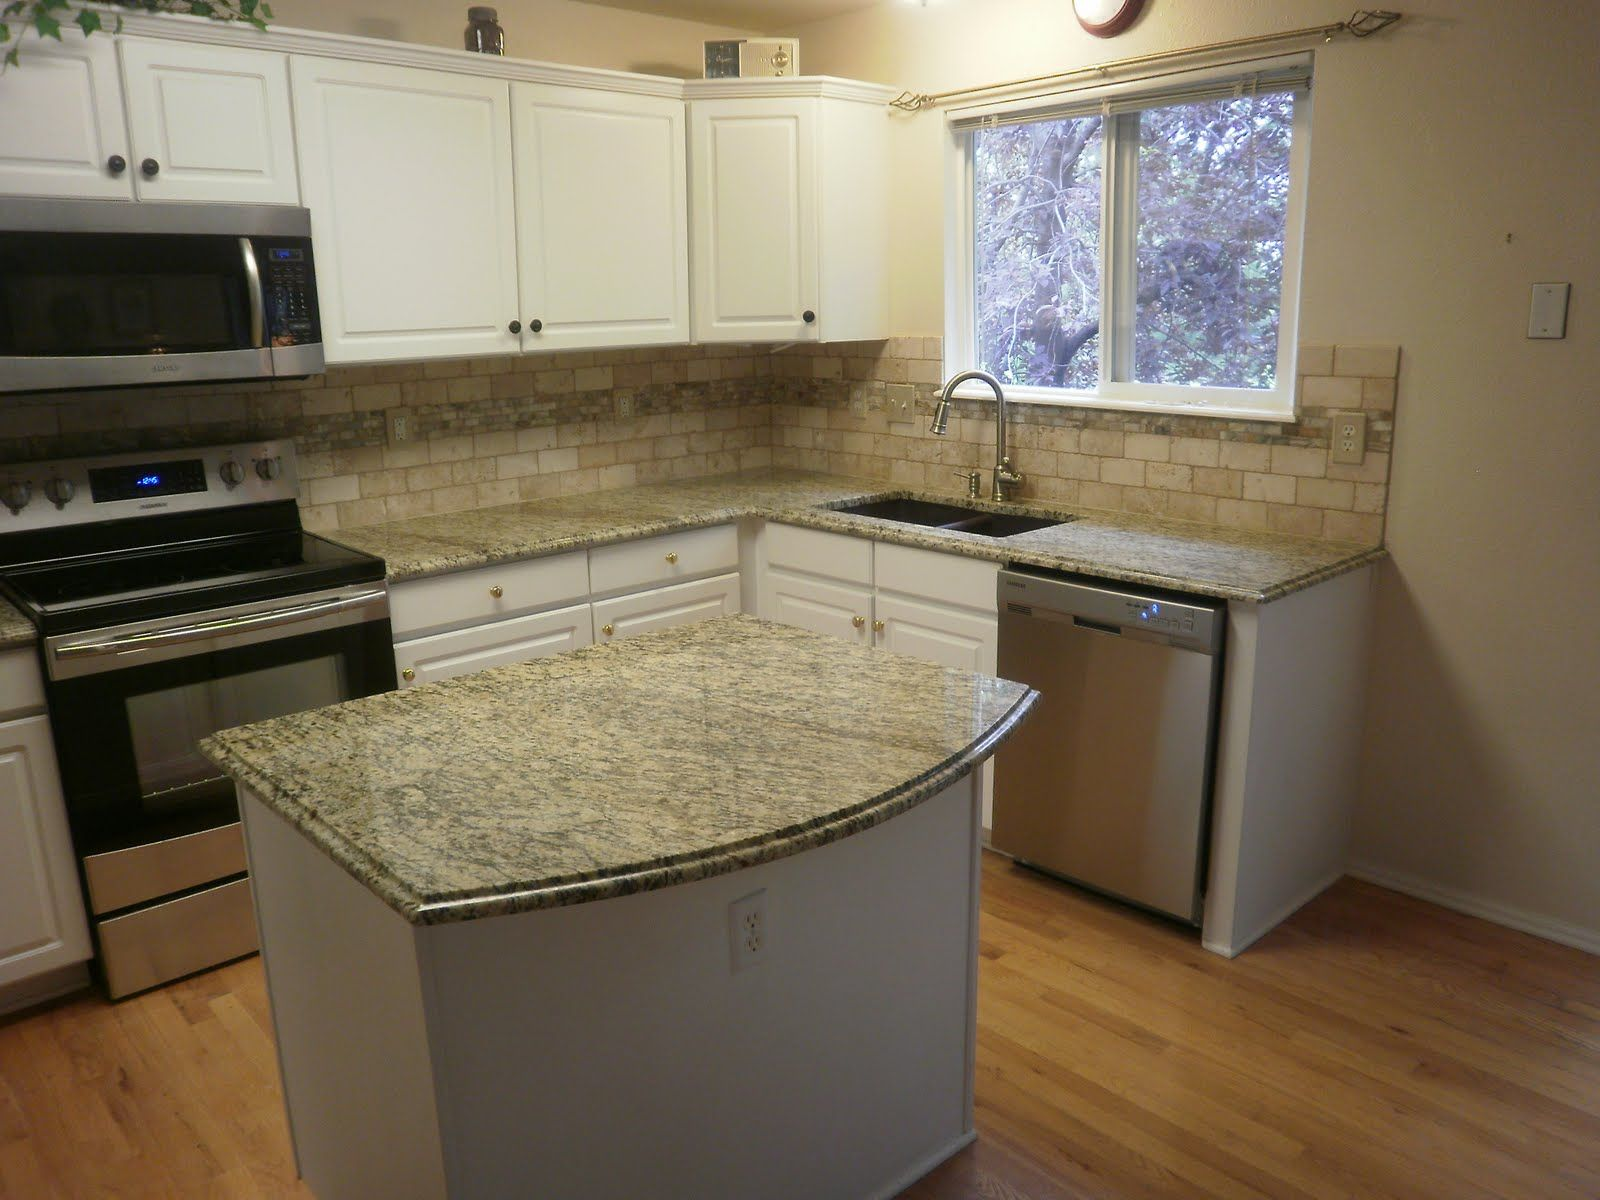 kitchen kitchen counters and backsplash Santa Cecilia granite countertops and travertine onyx backsplash